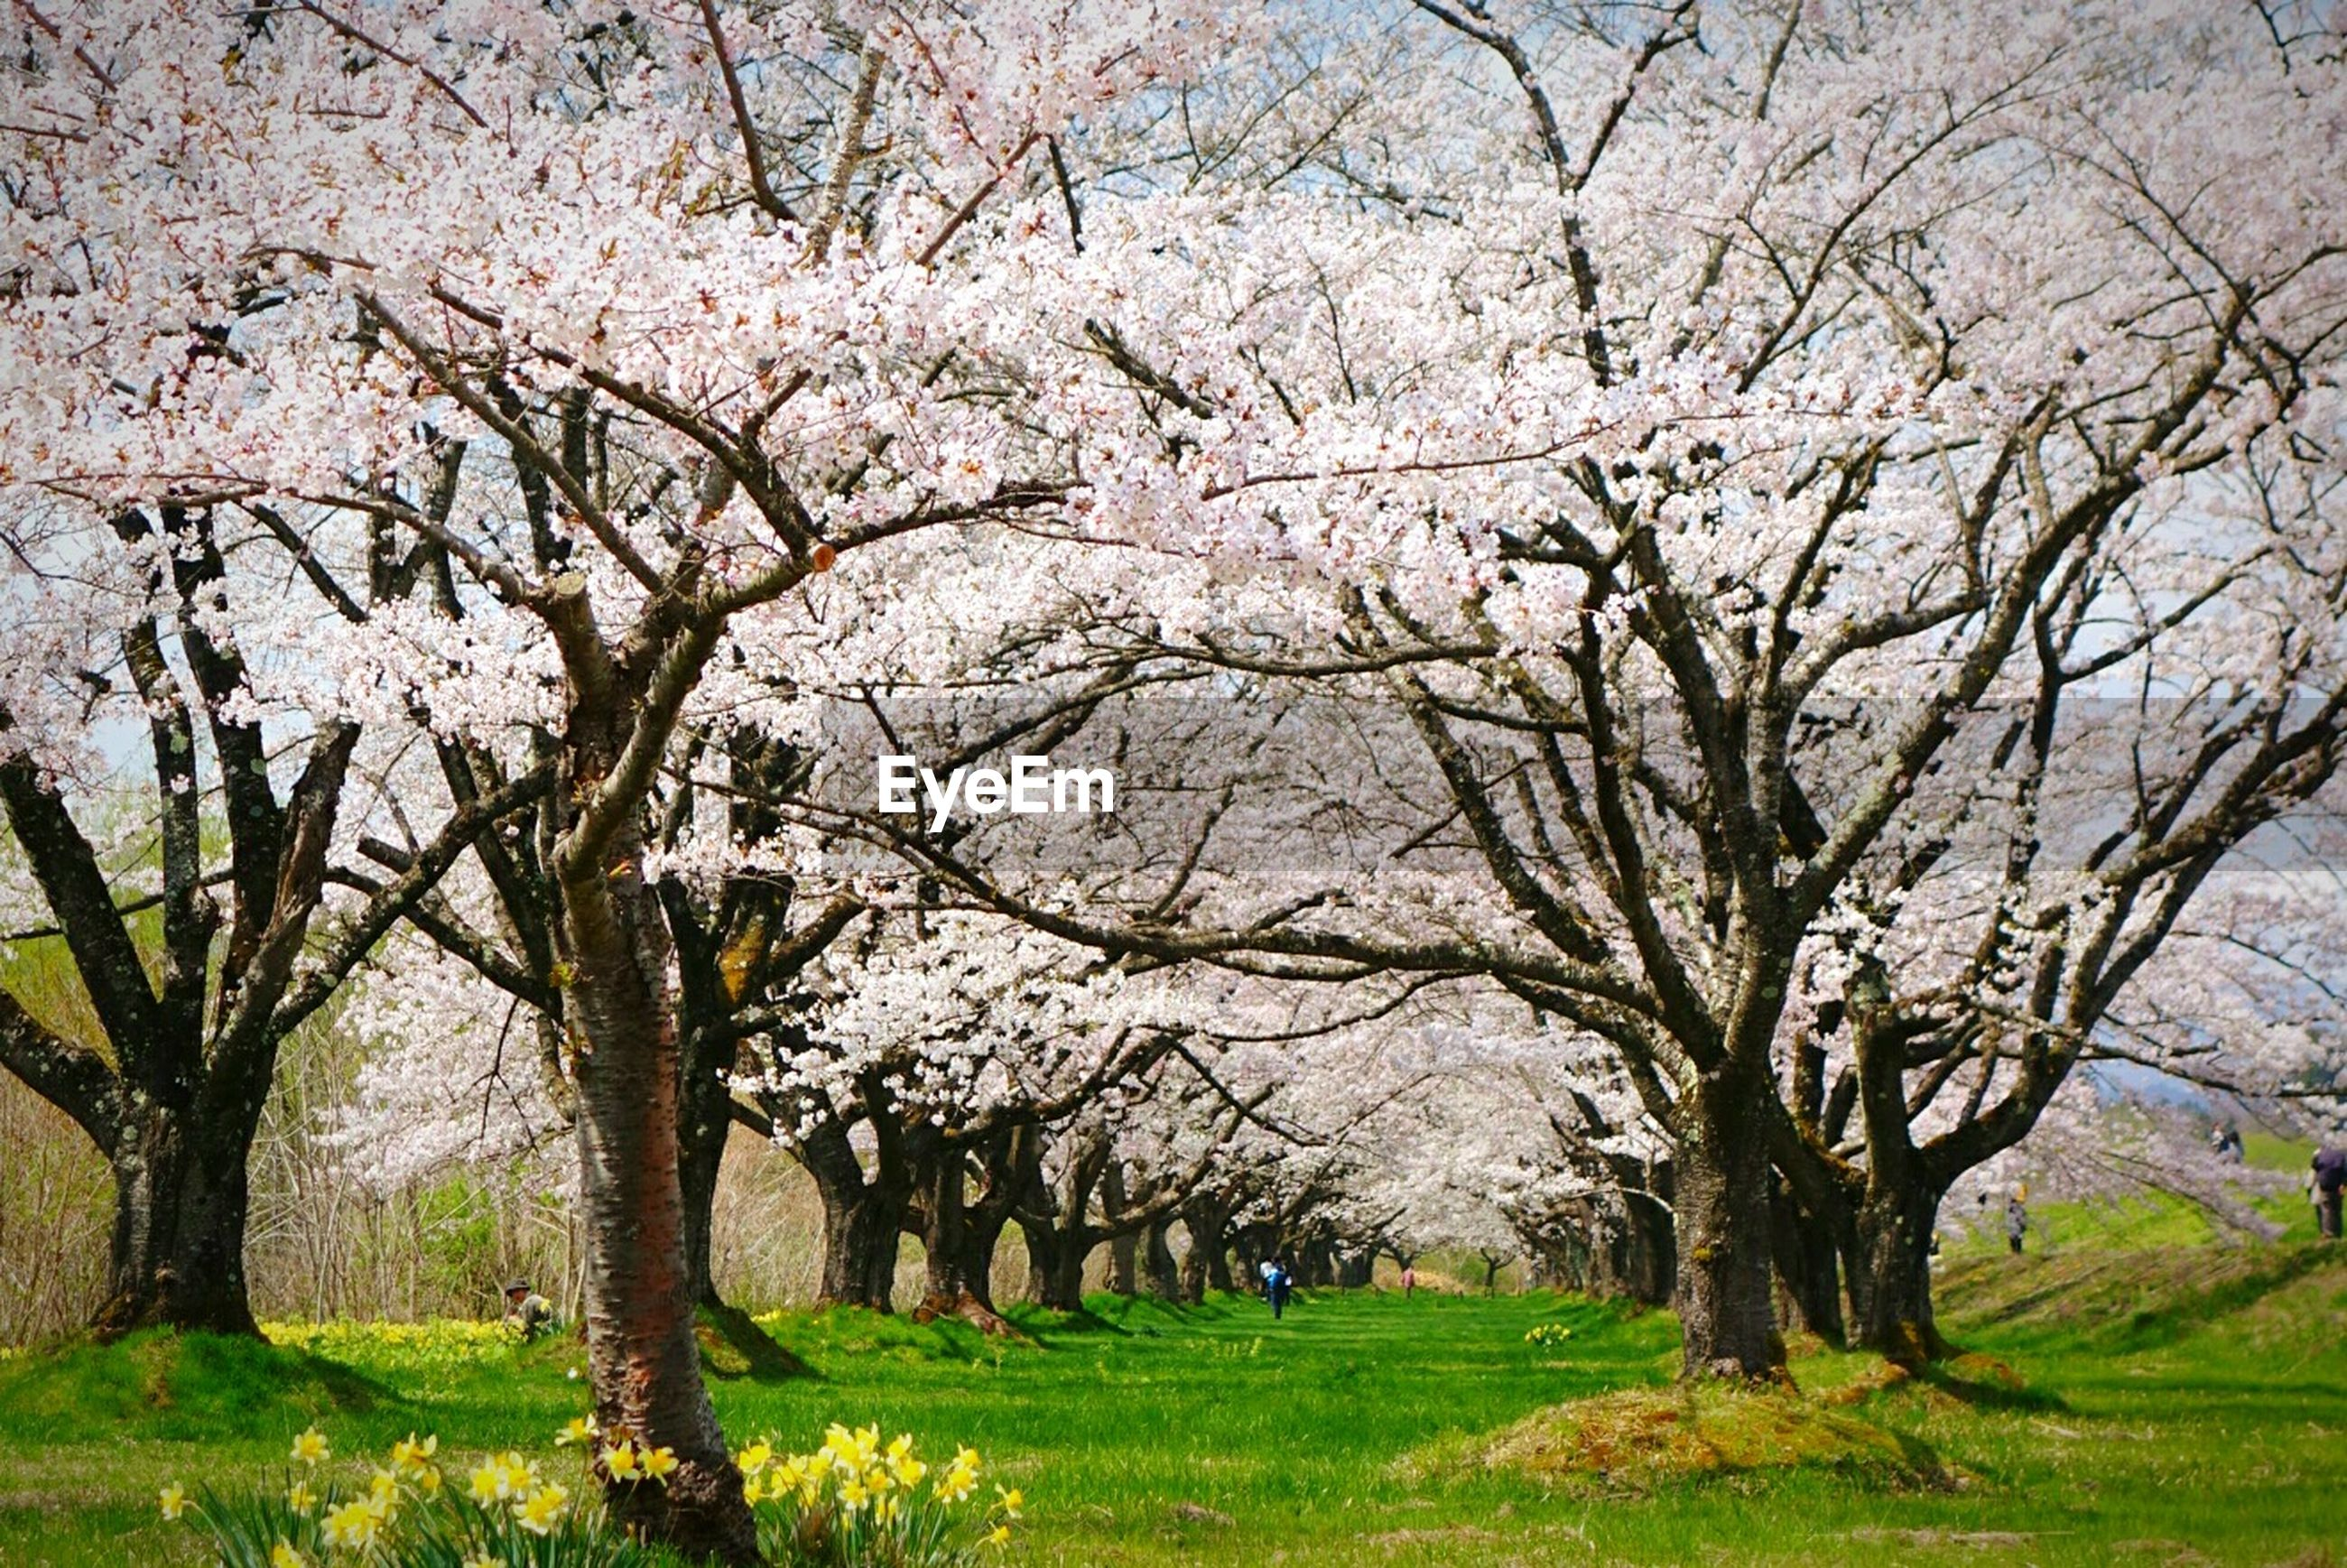 tree, branch, grass, flower, growth, tree trunk, bare tree, nature, beauty in nature, park - man made space, tranquility, tranquil scene, field, green color, scenics, park, blossom, day, freshness, landscape